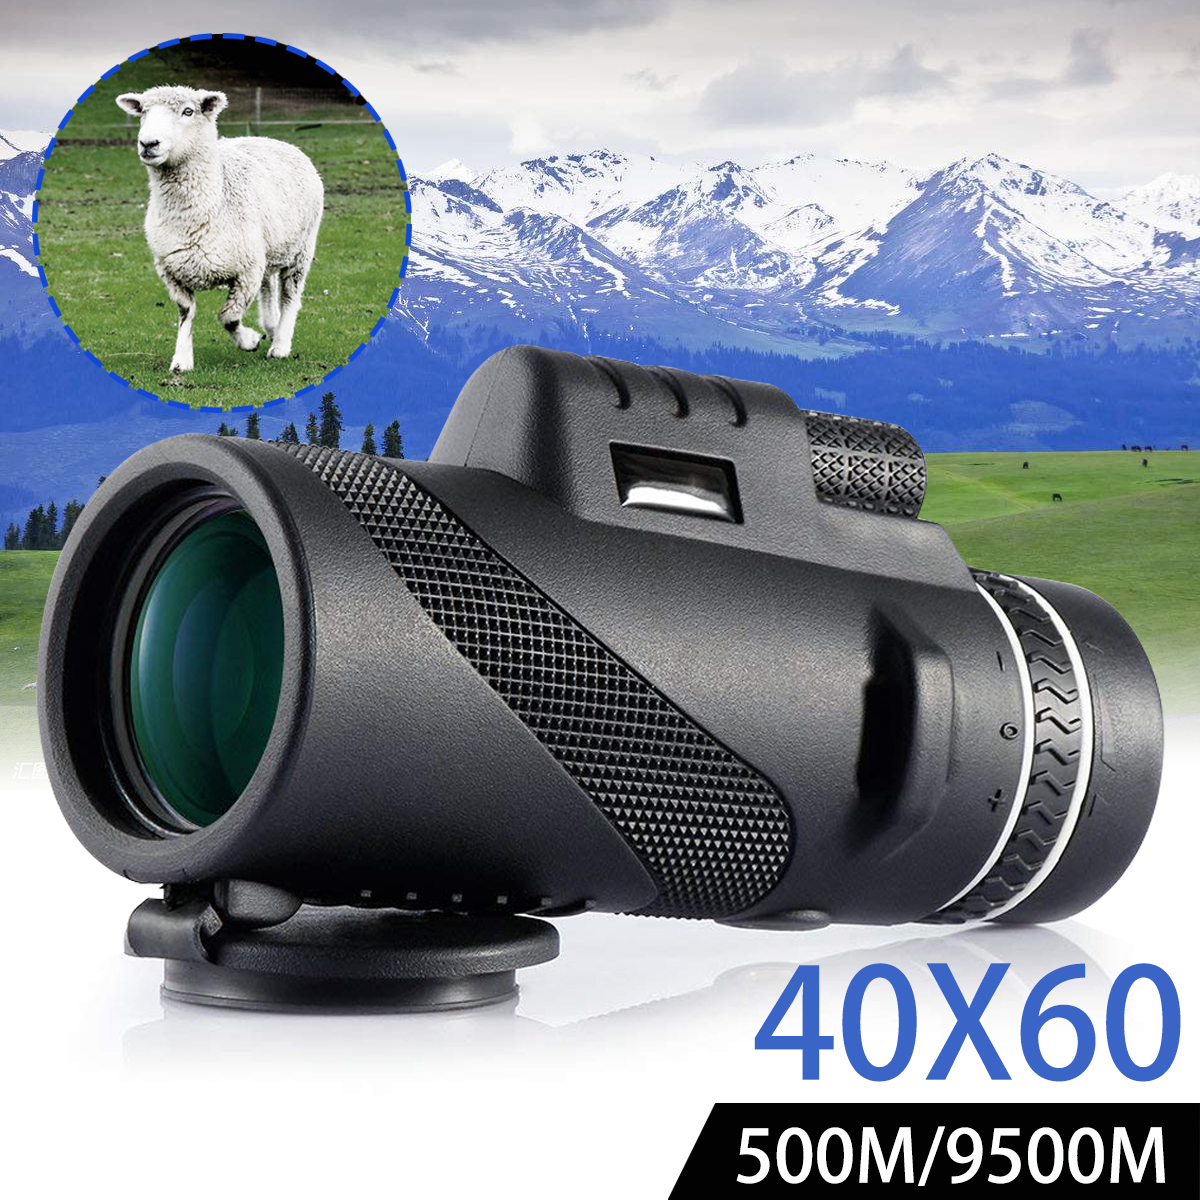 40X60 HD Portable Monocular,Dual Focus Optical Zoom Waterproof Telescope For Hiking Camping Hunting Sightseeing